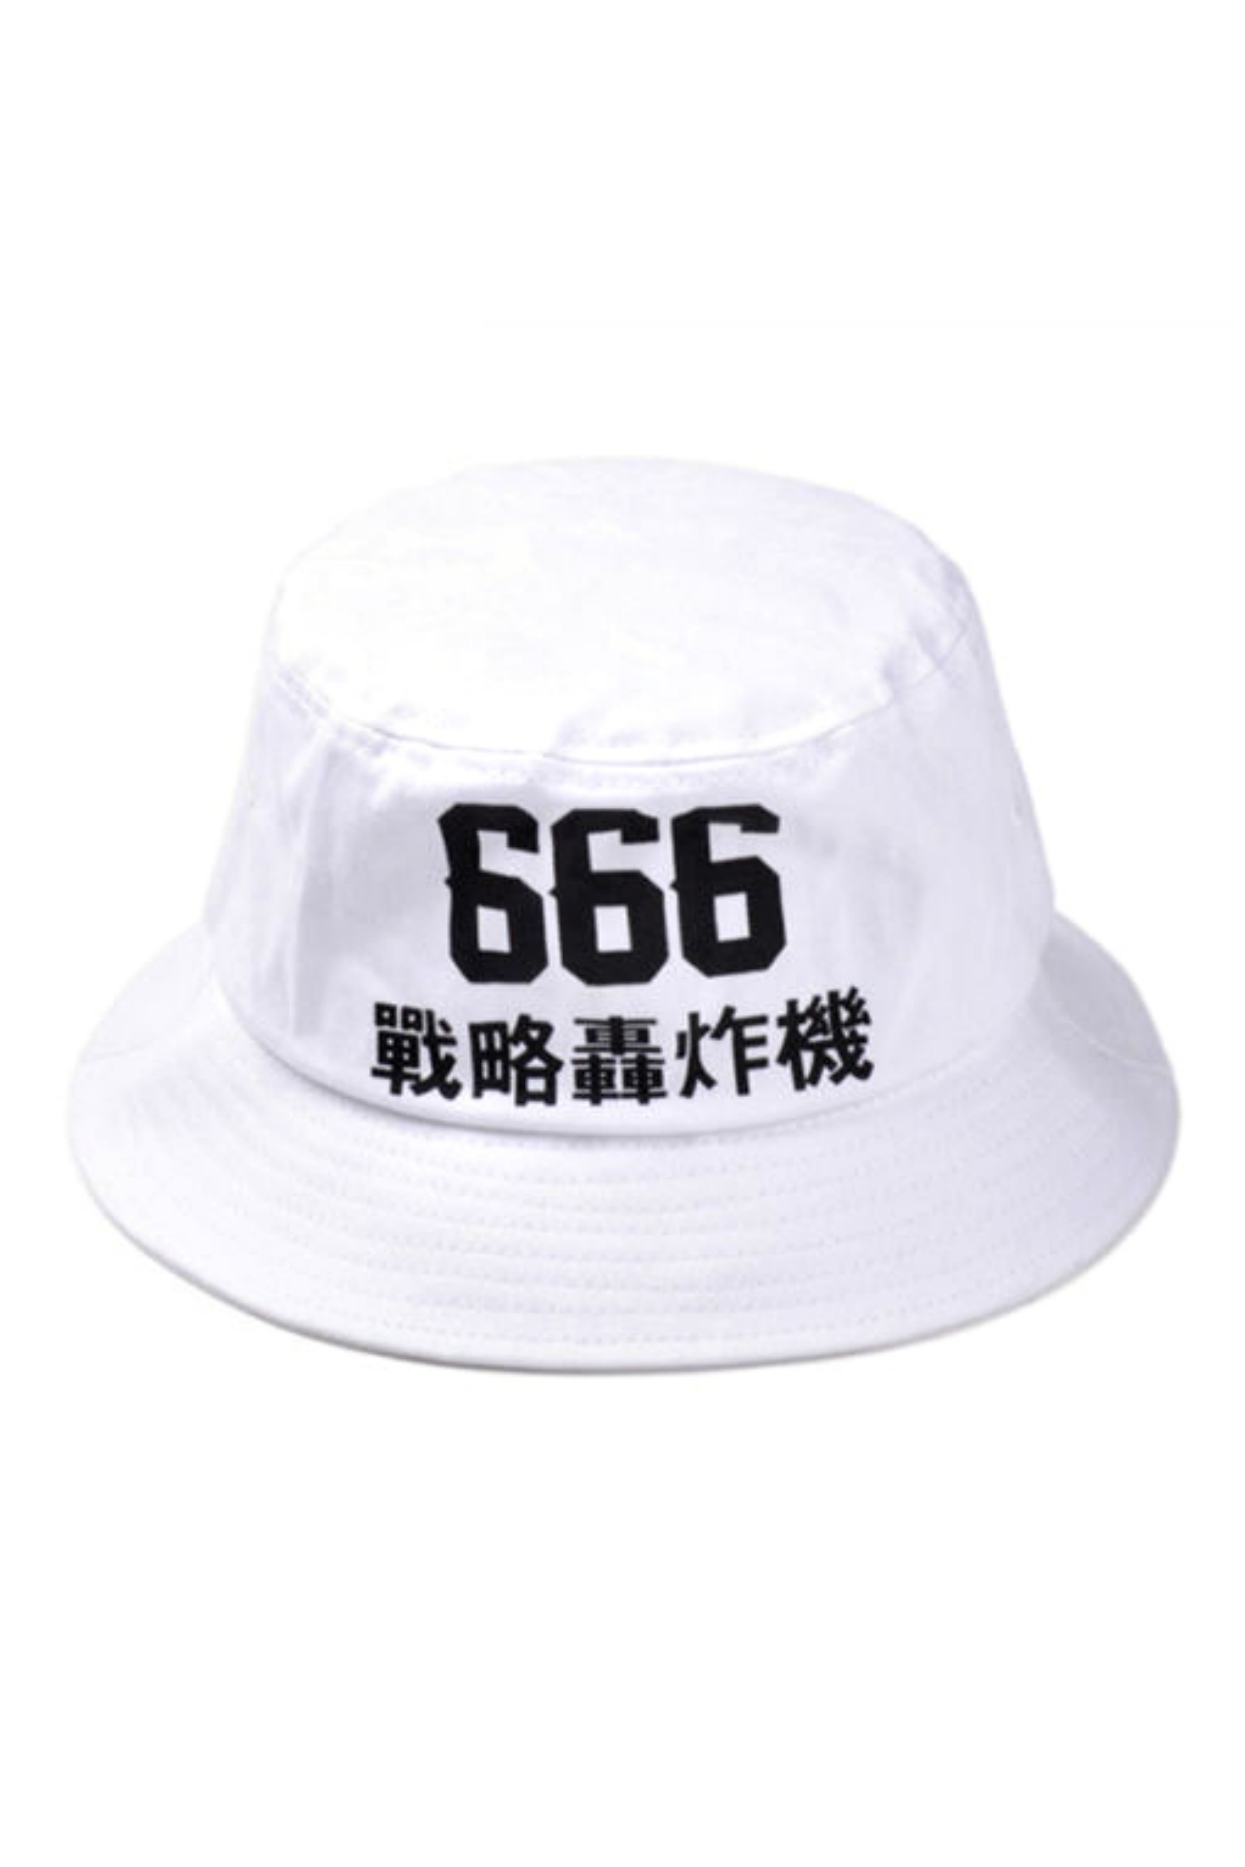 666 Strategic Bomber Bucket Hat | Just Vu